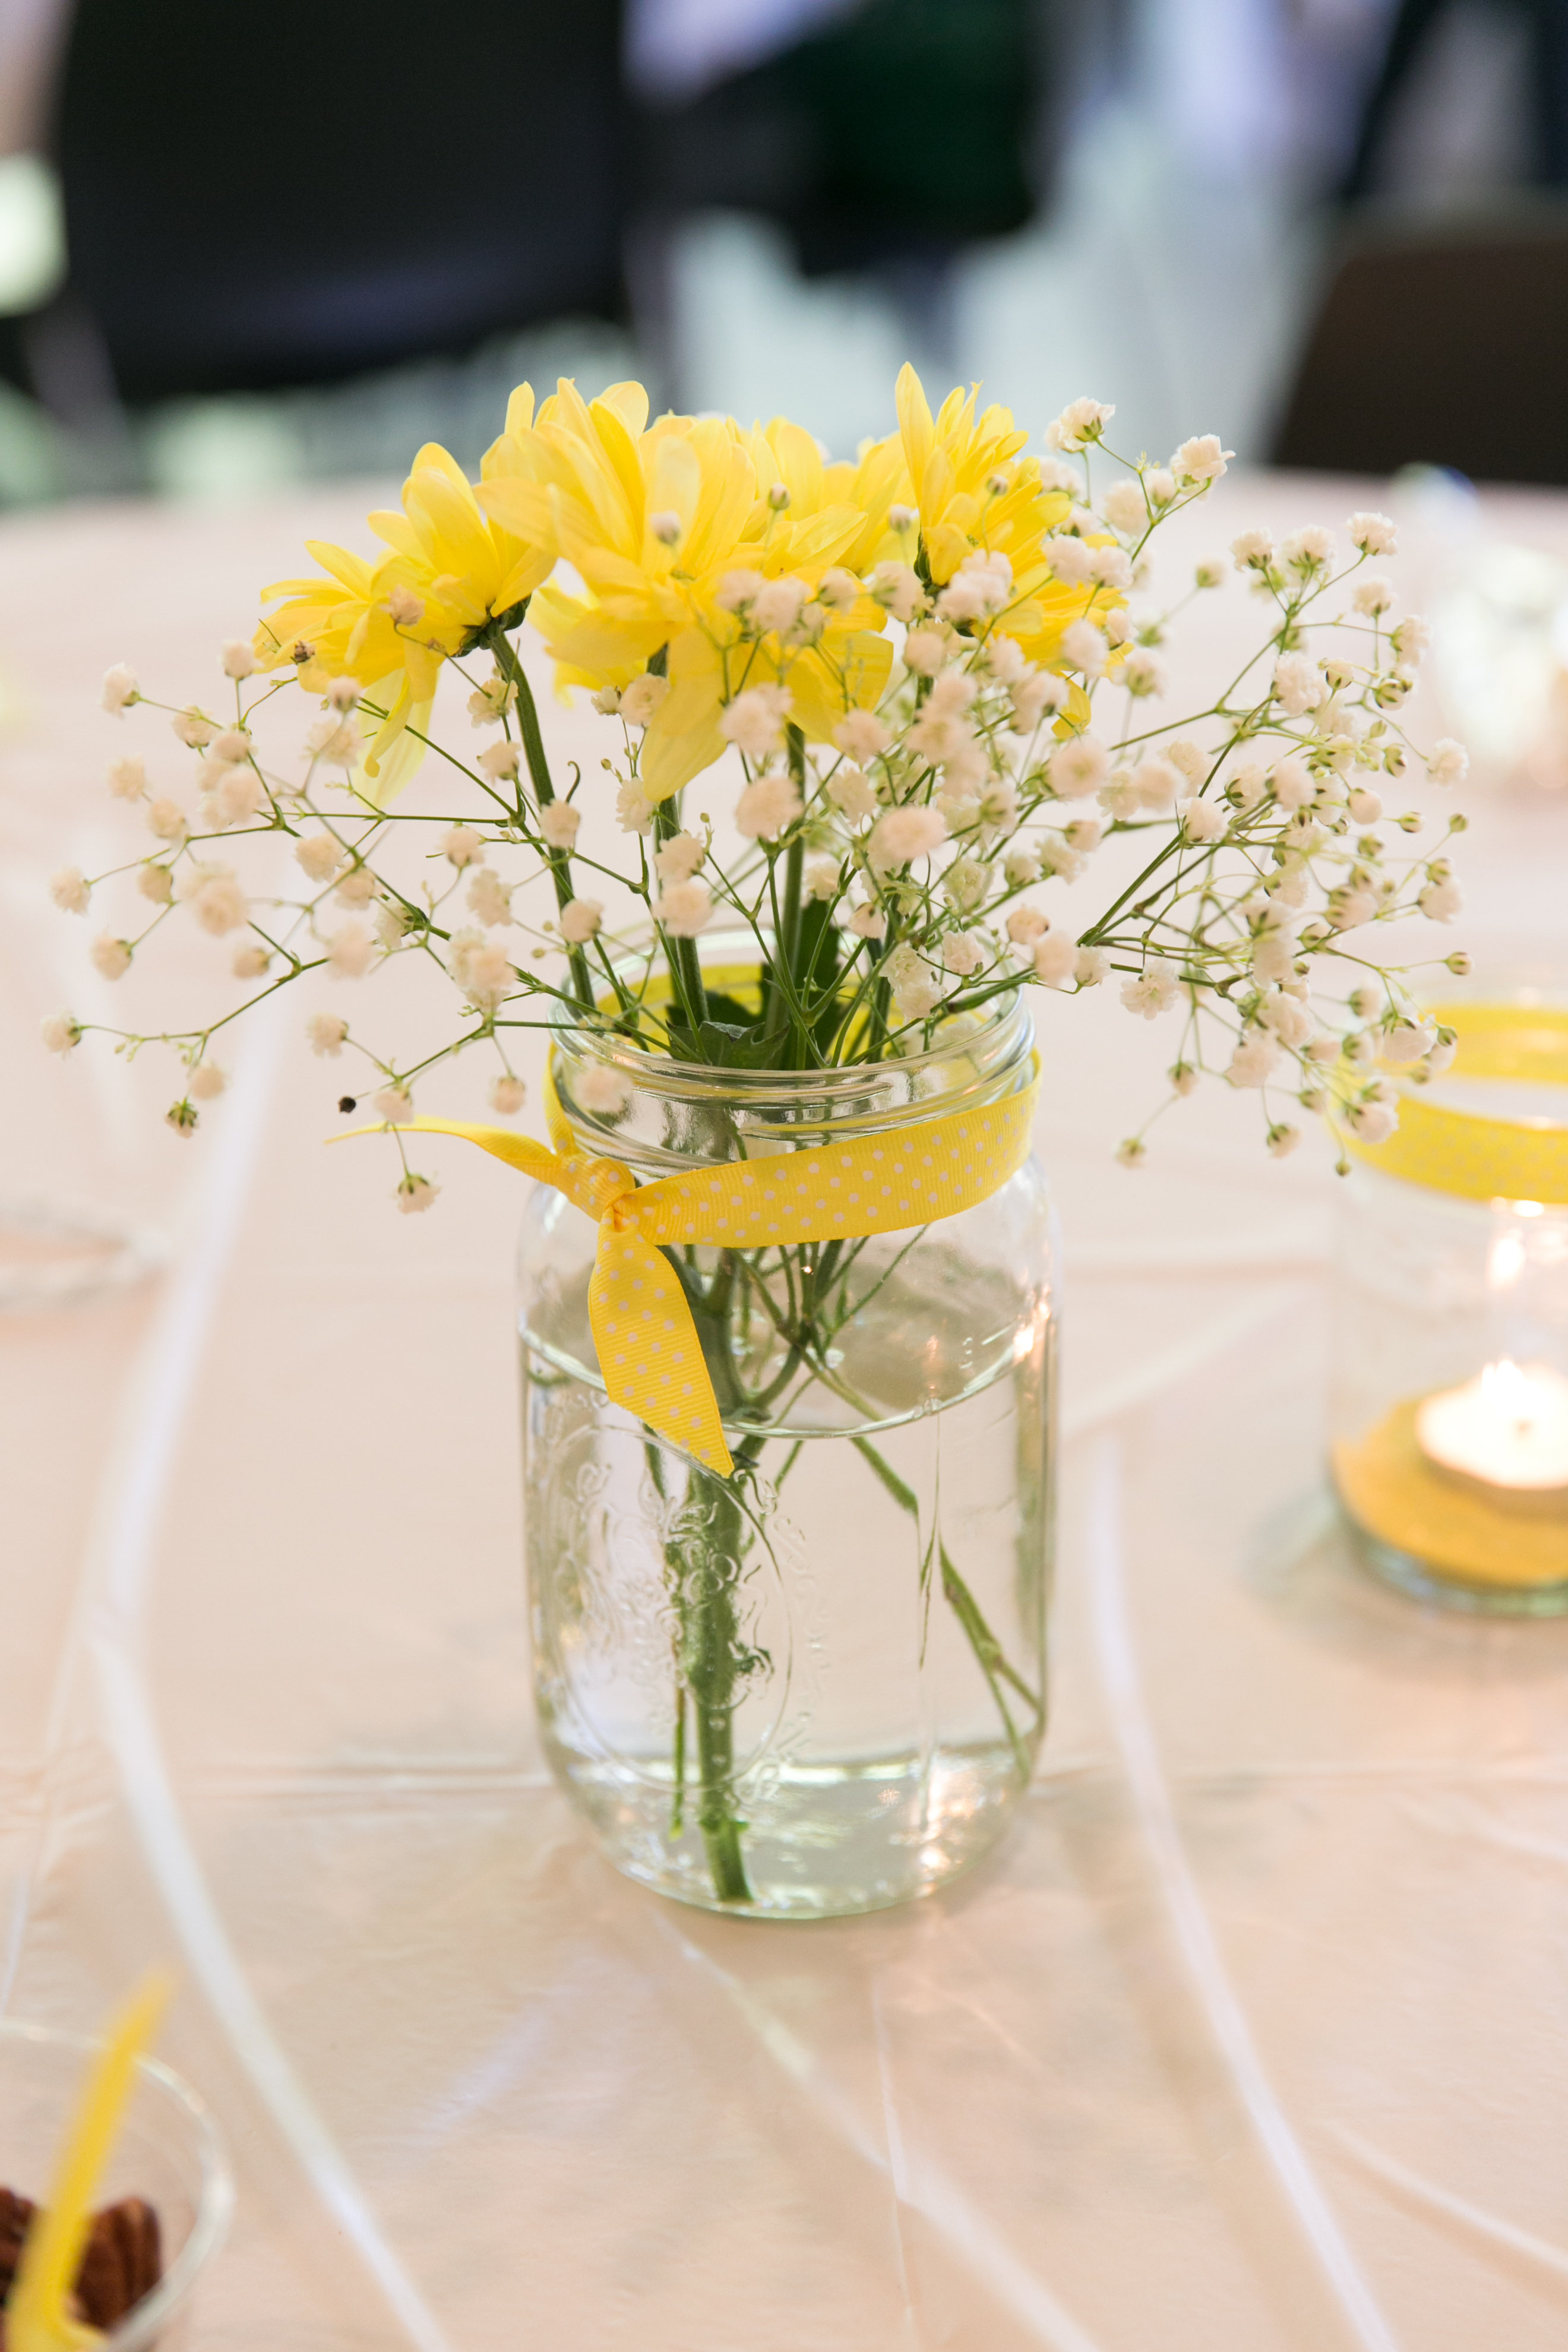 You Are My Sunshine A Baby Shower by Rachel Rossi